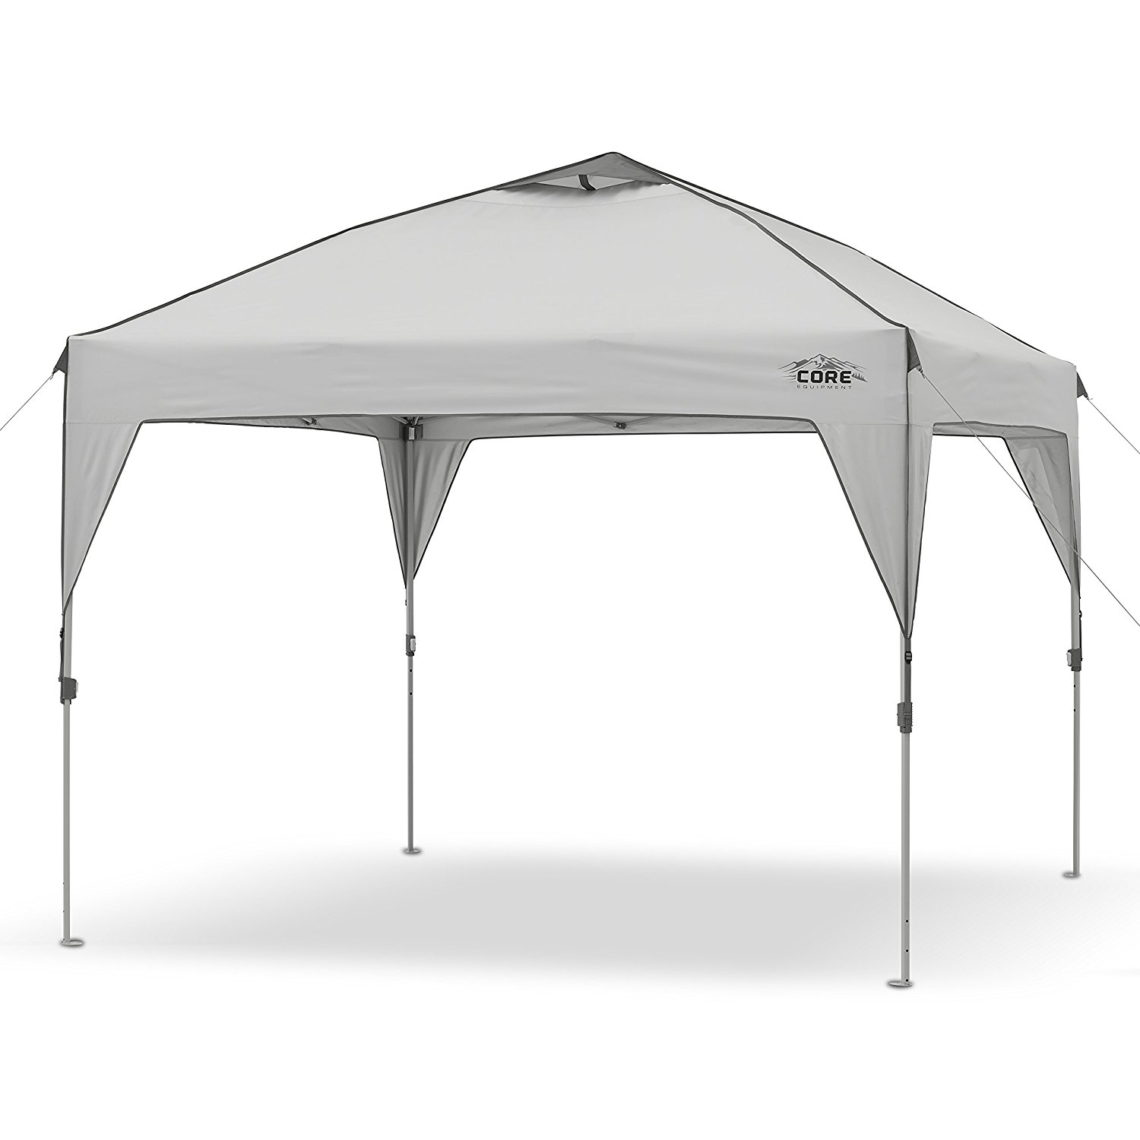 Core 10x10 Instant Shelter Popup Canopy  sc 1 st  Outer Banks & Best Beach Umbrellas u0026 Canopies - OuterBanks.com